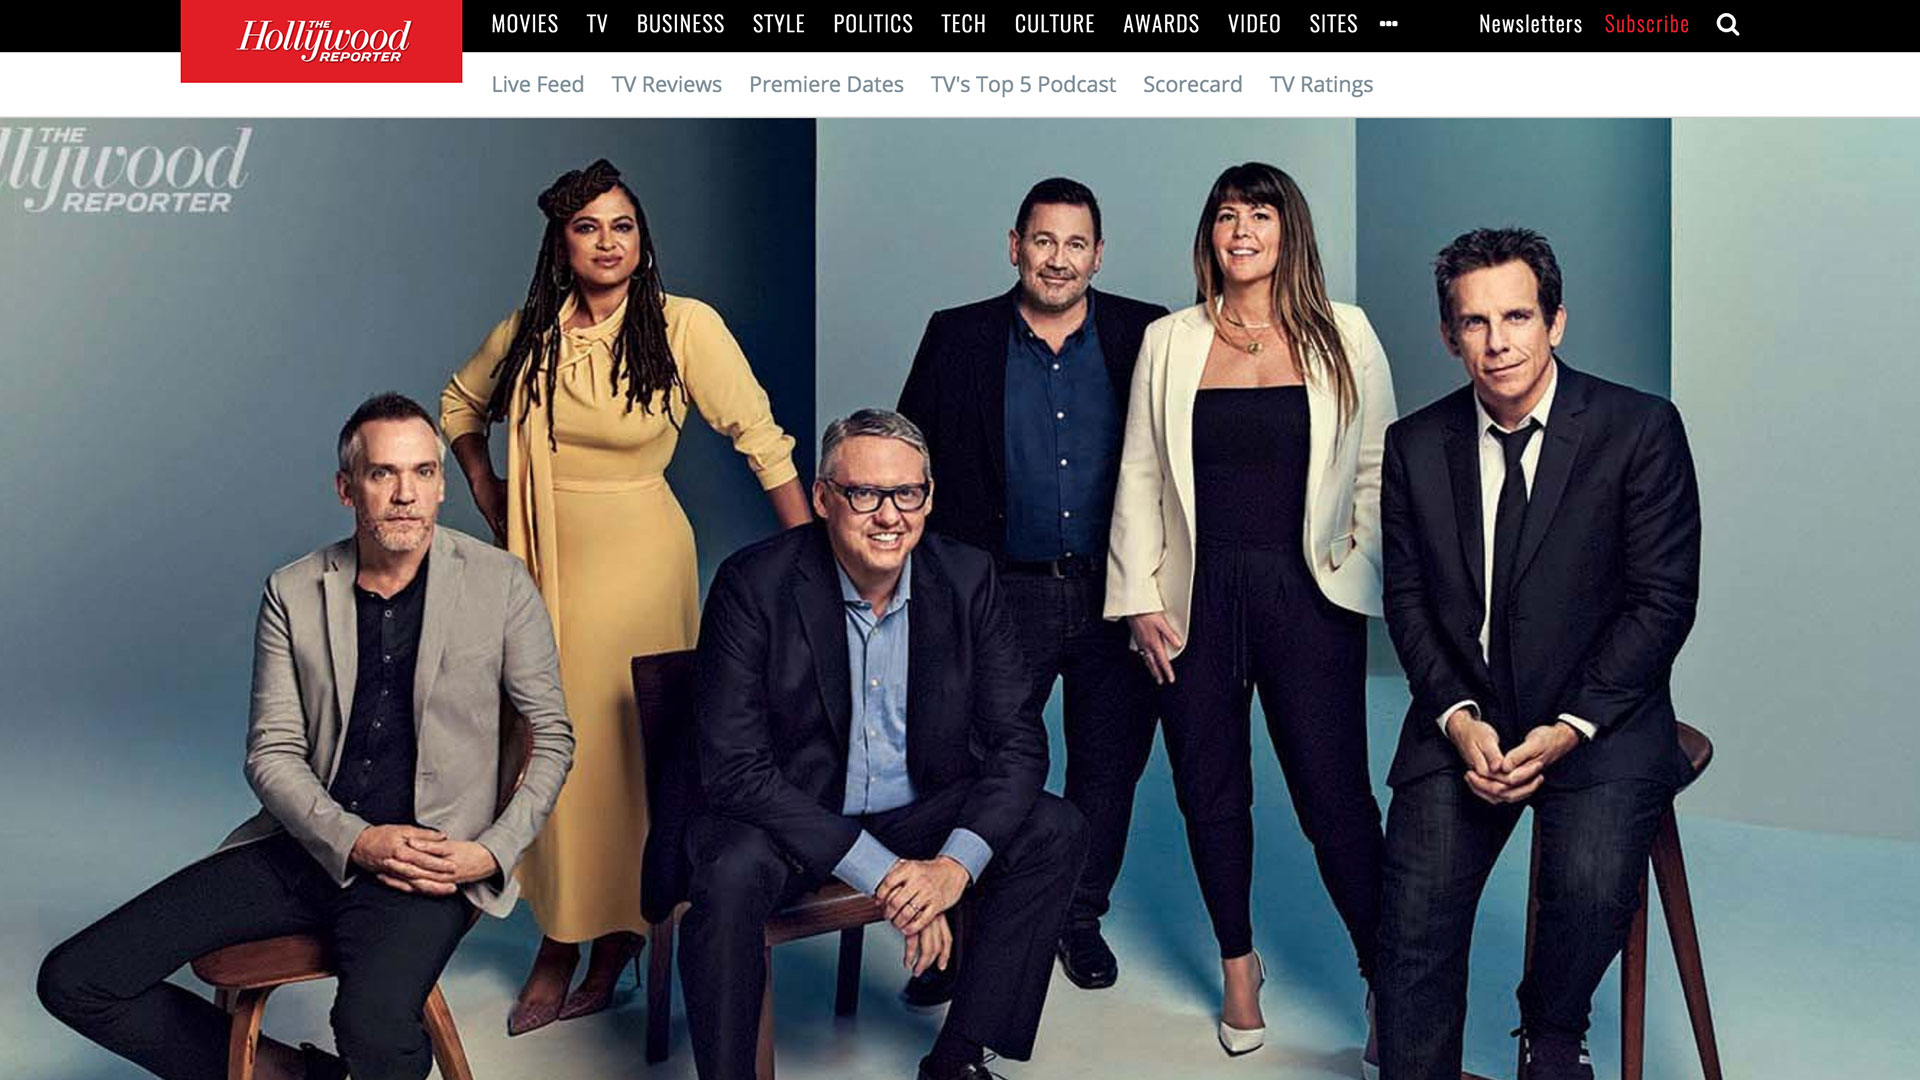 """Fairness Rocks News """"It's Part of the Job to Be Unsure"""": Ava DuVernay, Ben Stiller and The Hollywood Reporter TV Director Roundtable"""